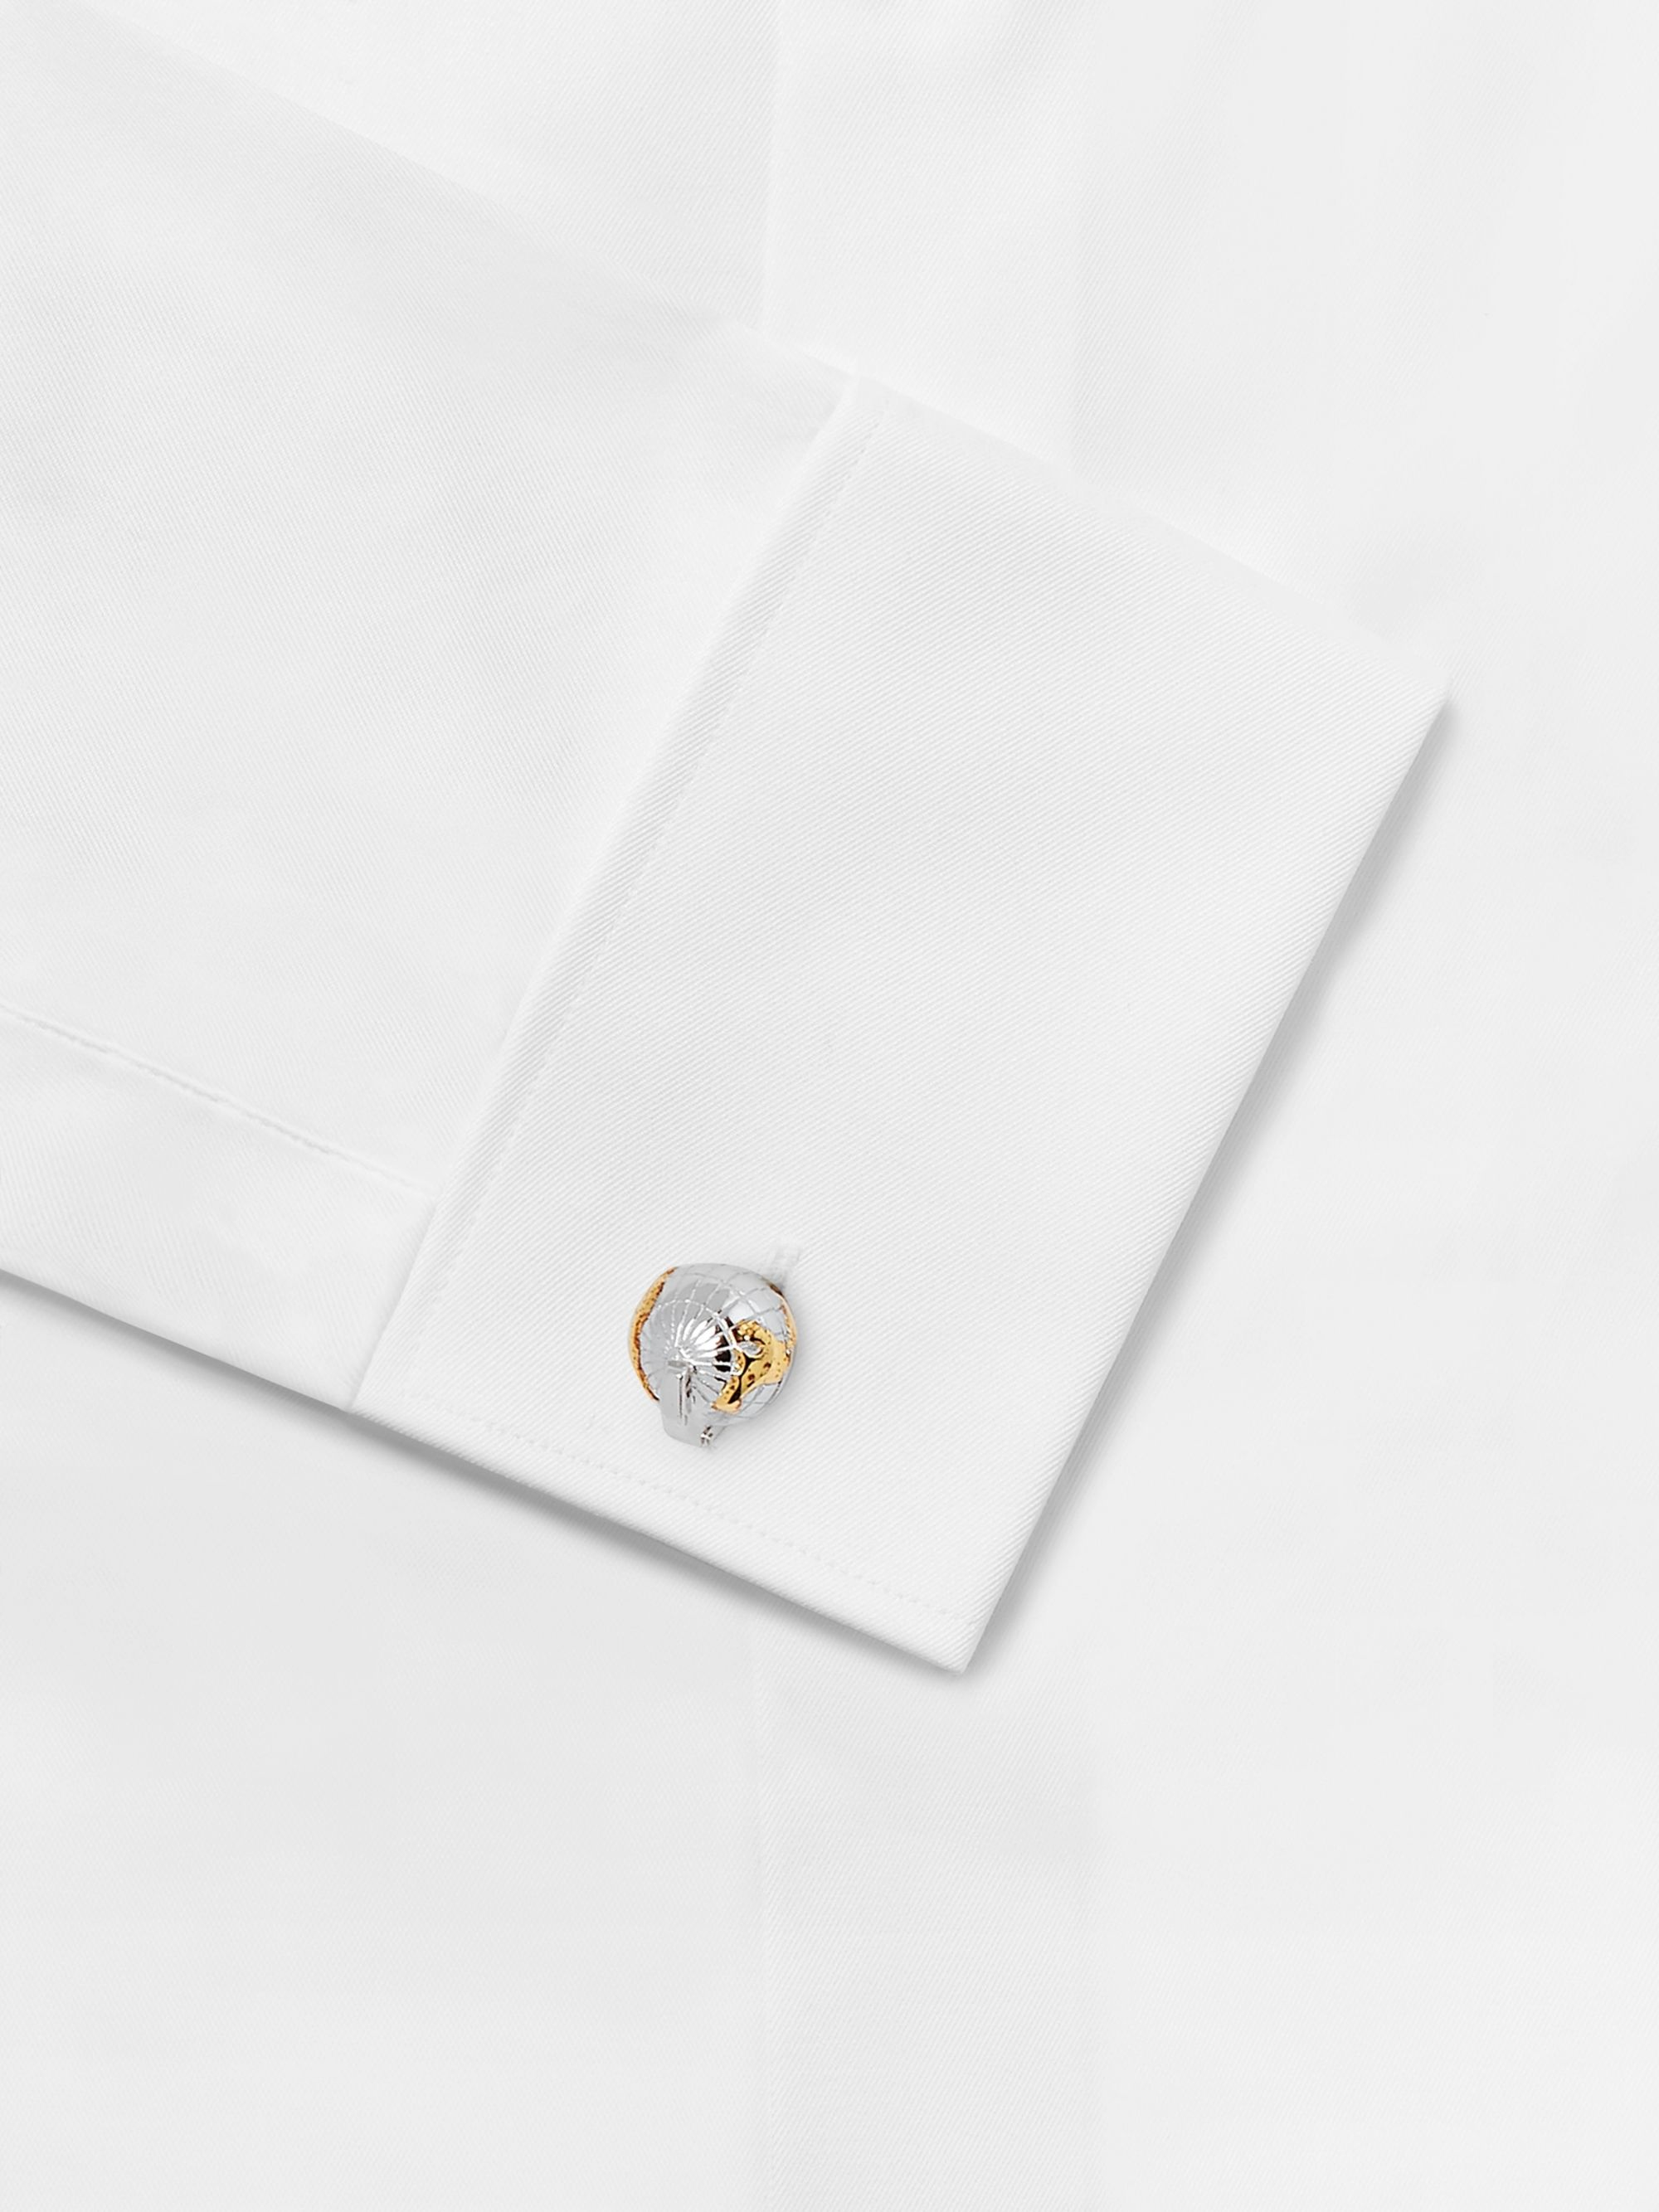 TATEOSSIAN Silver, Gold and Rhodium-Plated Cufflinks